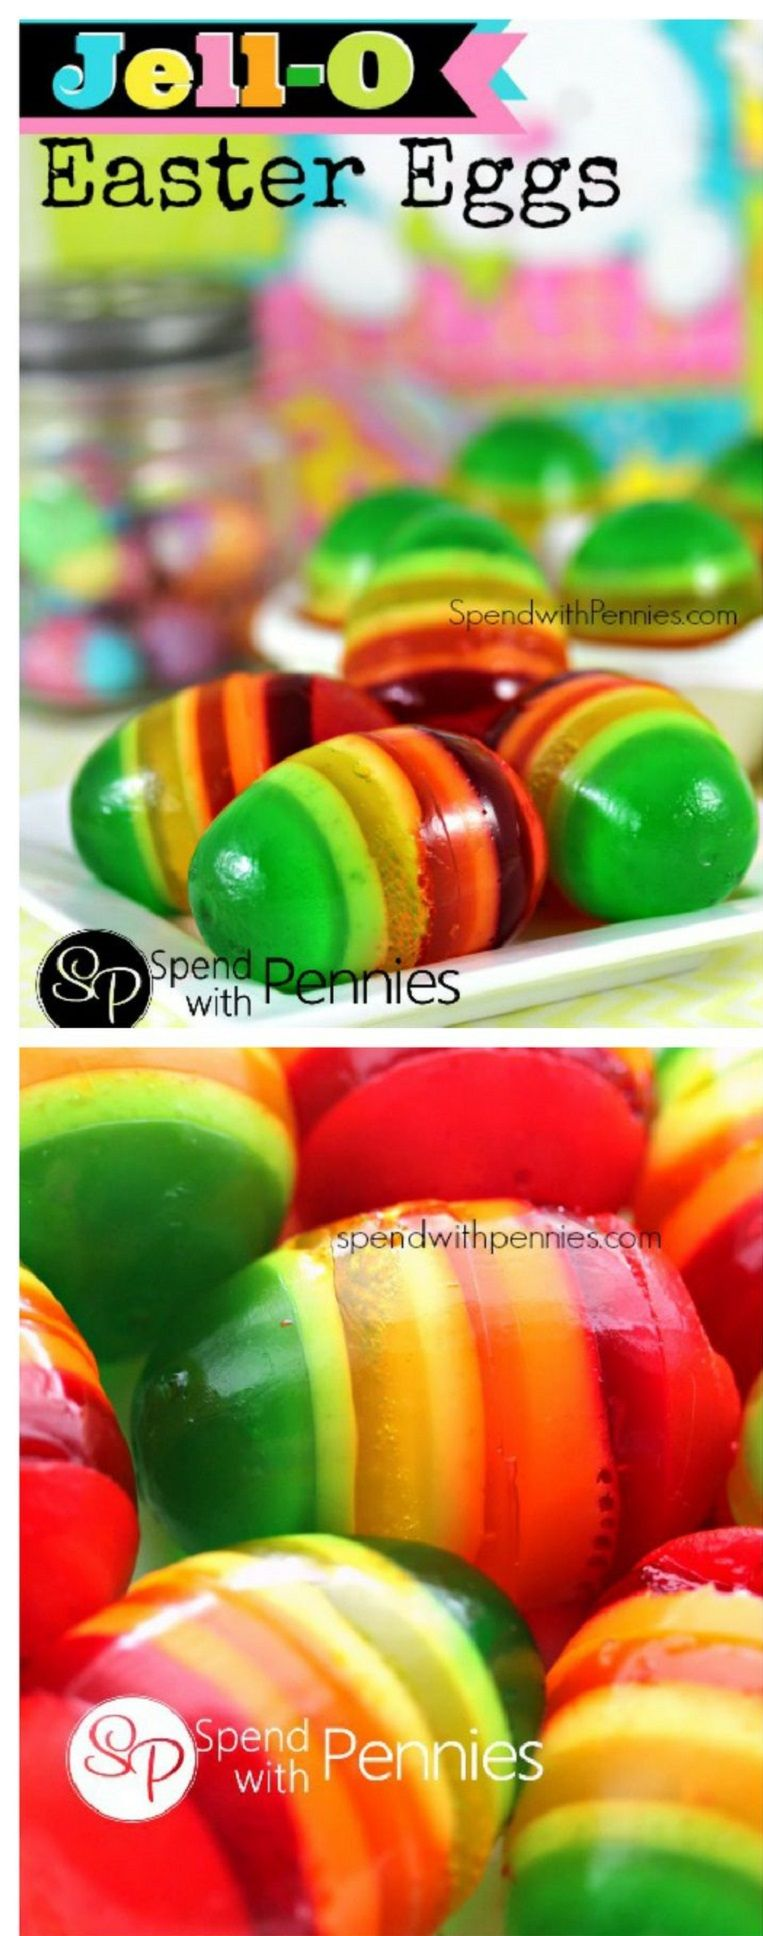 Striped Jell-O Easter Eggs - 14 Egg-Shaped Snacks for Easter ...